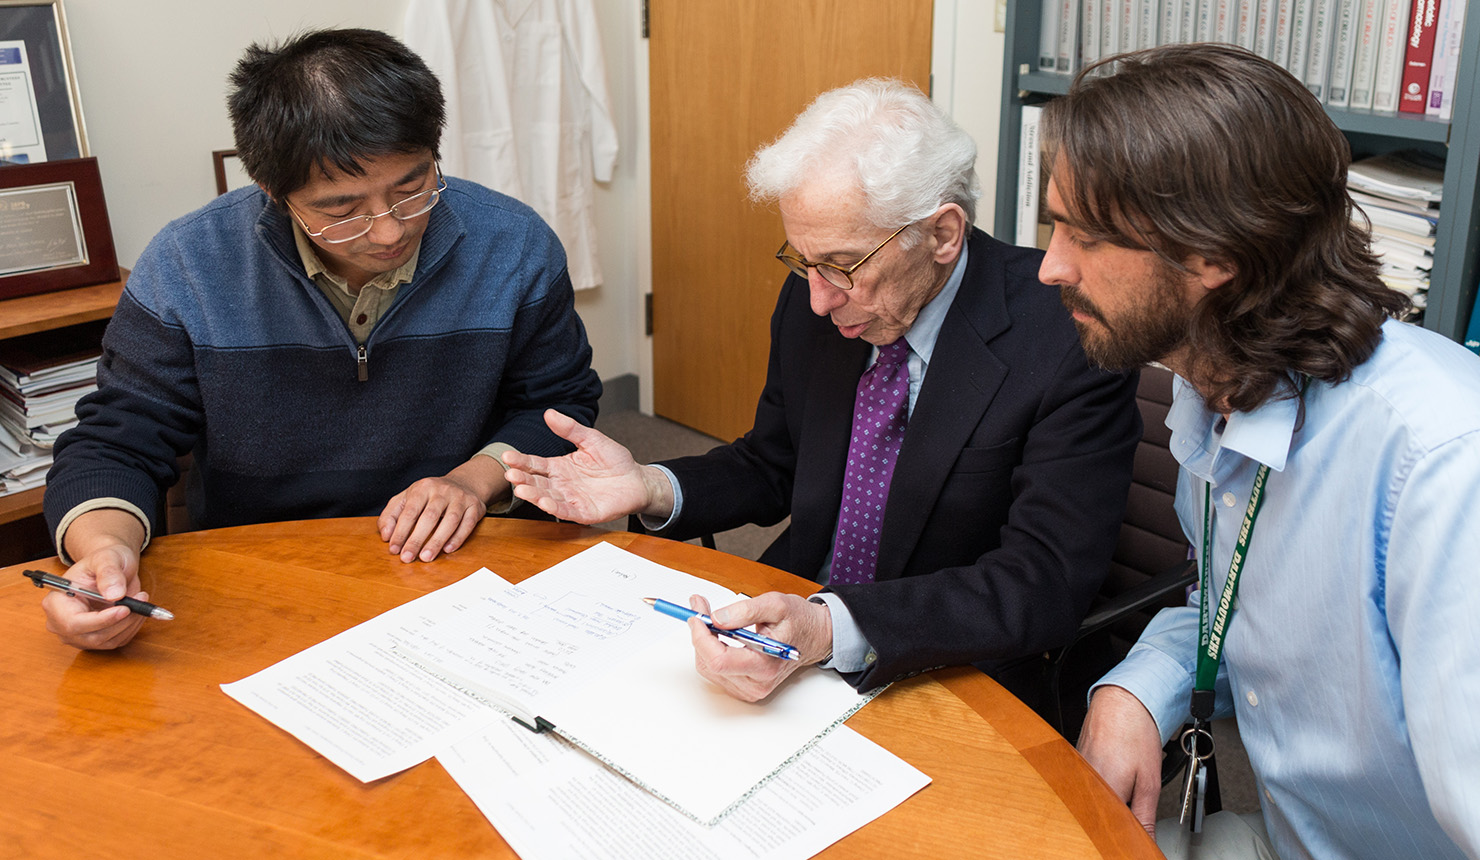 Left to right, Chao Cheng, PhD, assistant professor of genetics, Alan Green, MD, director of SYNERGY, and Wilder Doucette, MD, PhD, assistant professor of psychiatry, review a research grant proposal. (Photo by Rob Strong)